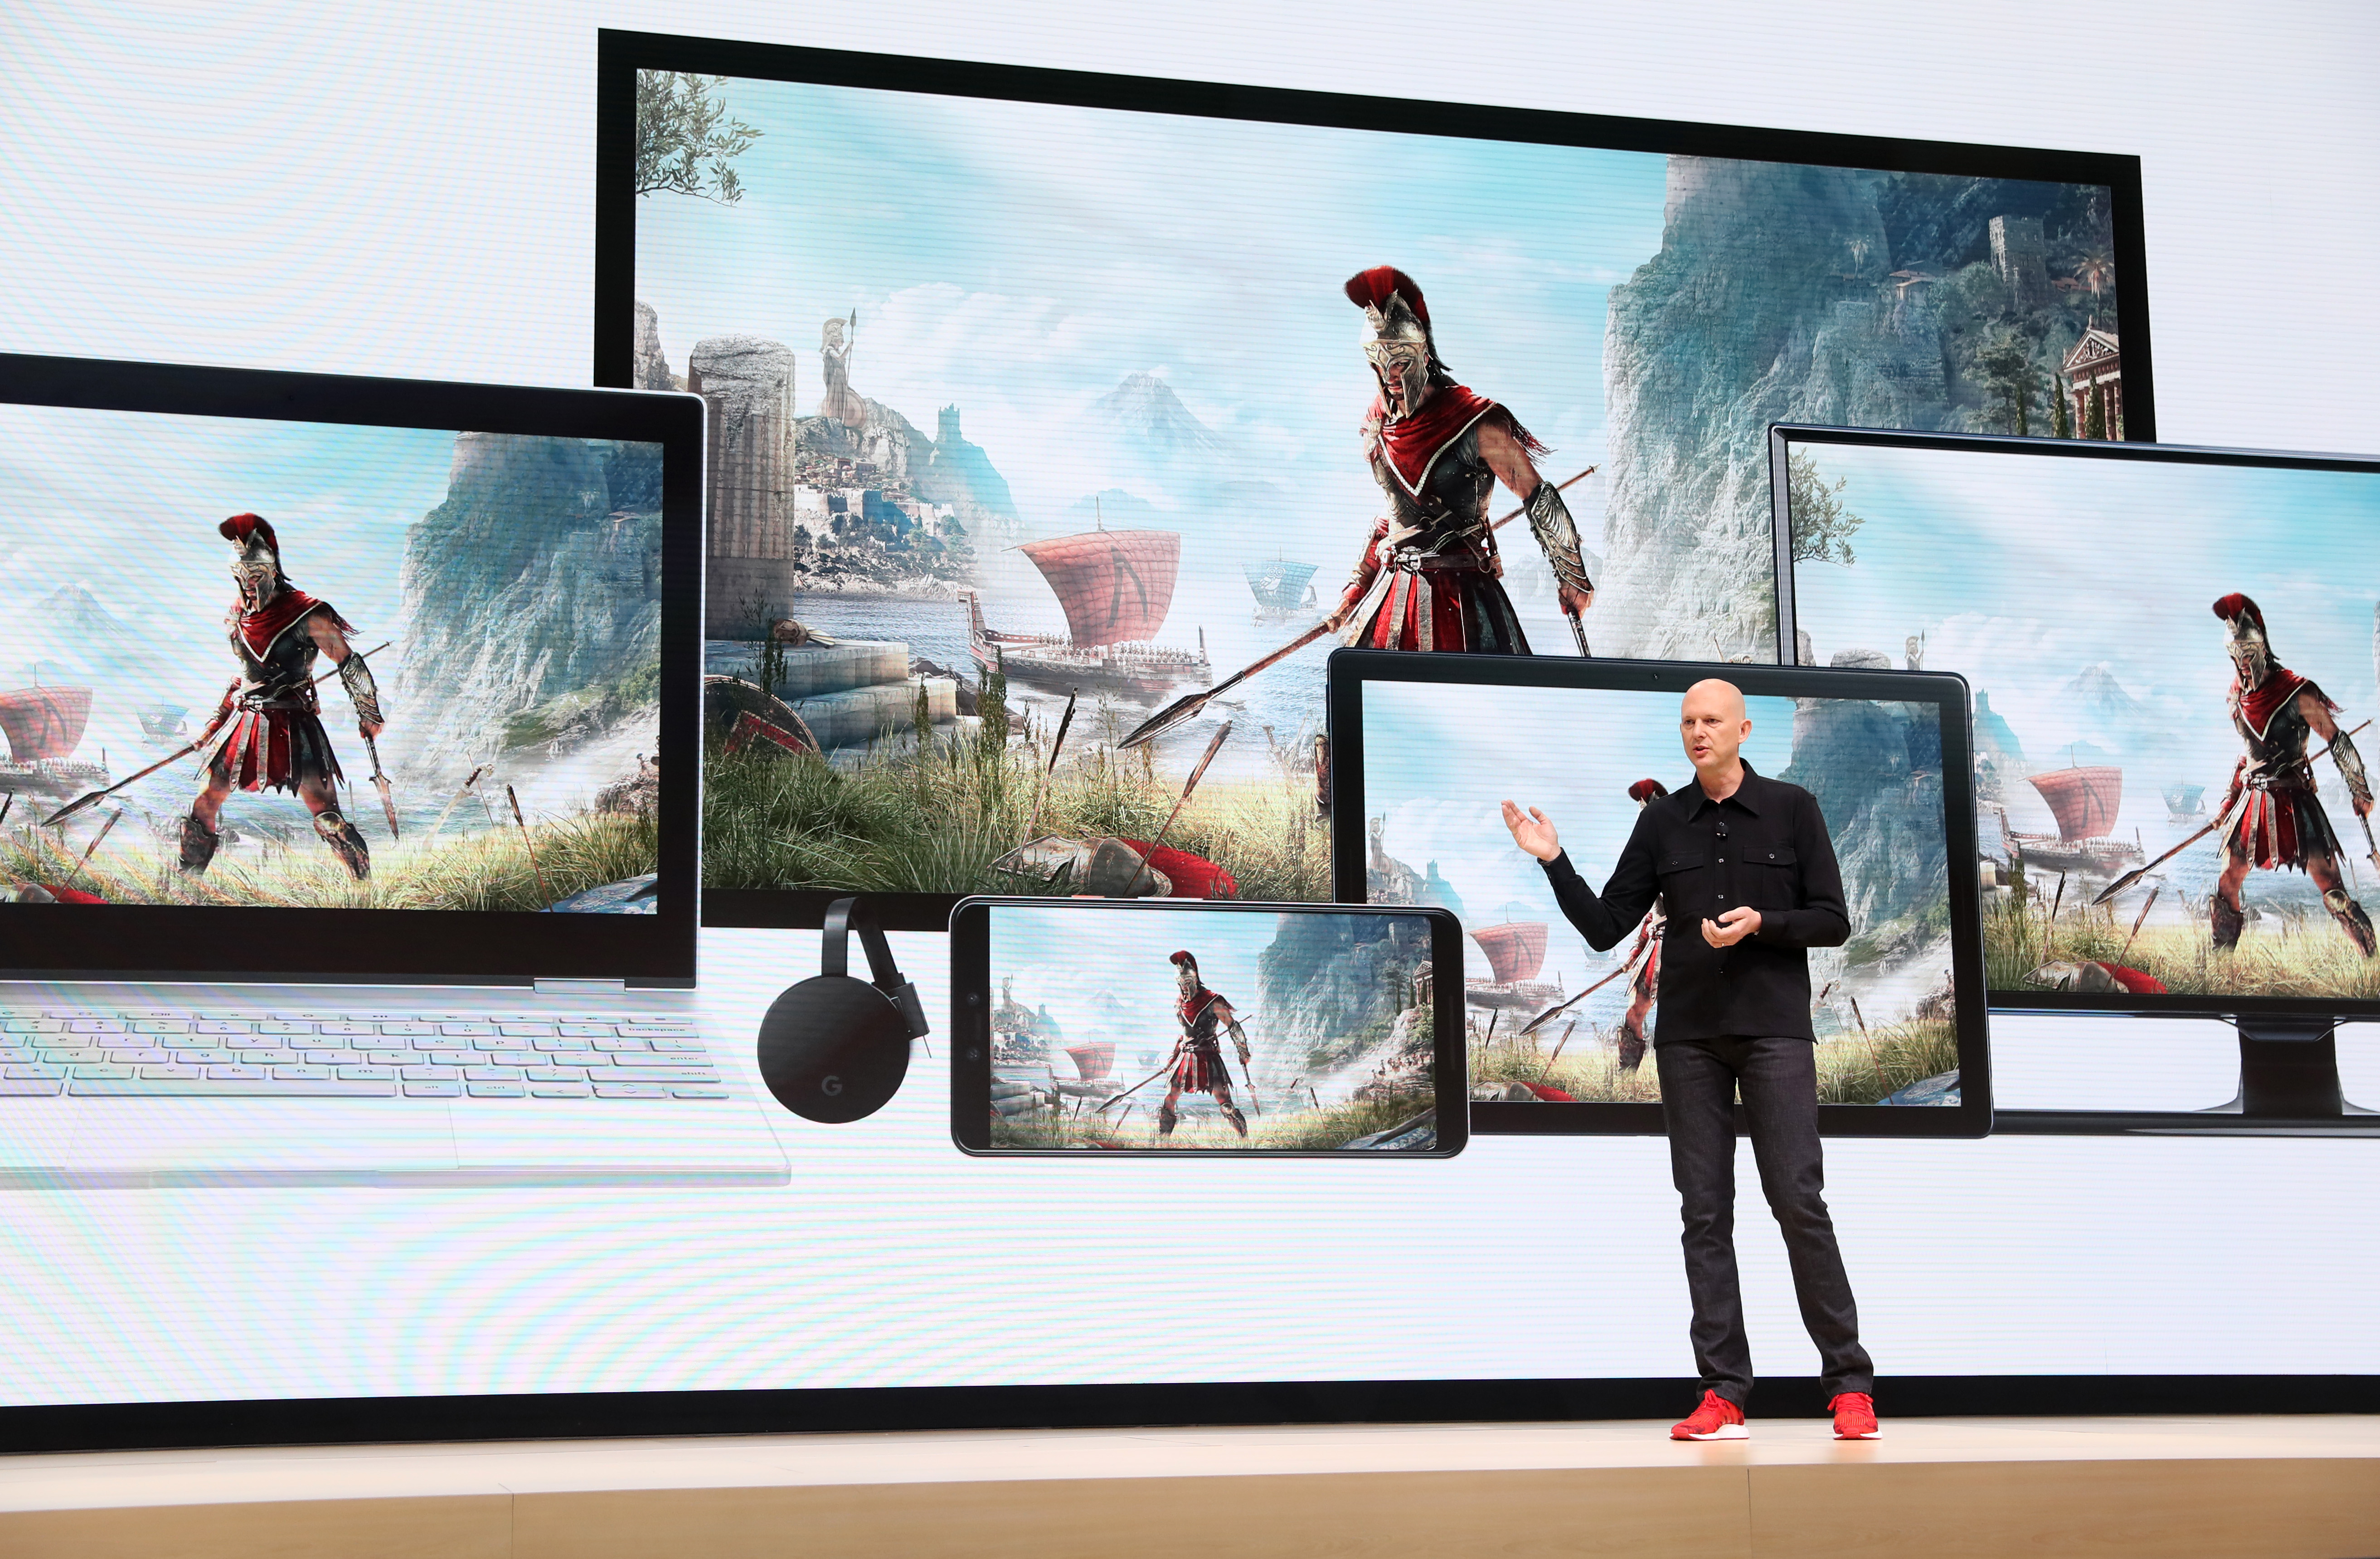 Phil Harrison presents Stadia, standing in front of a backdrop of devices playing Assassin's Creed Odyssey, at Google's GDC 2019 keynote.